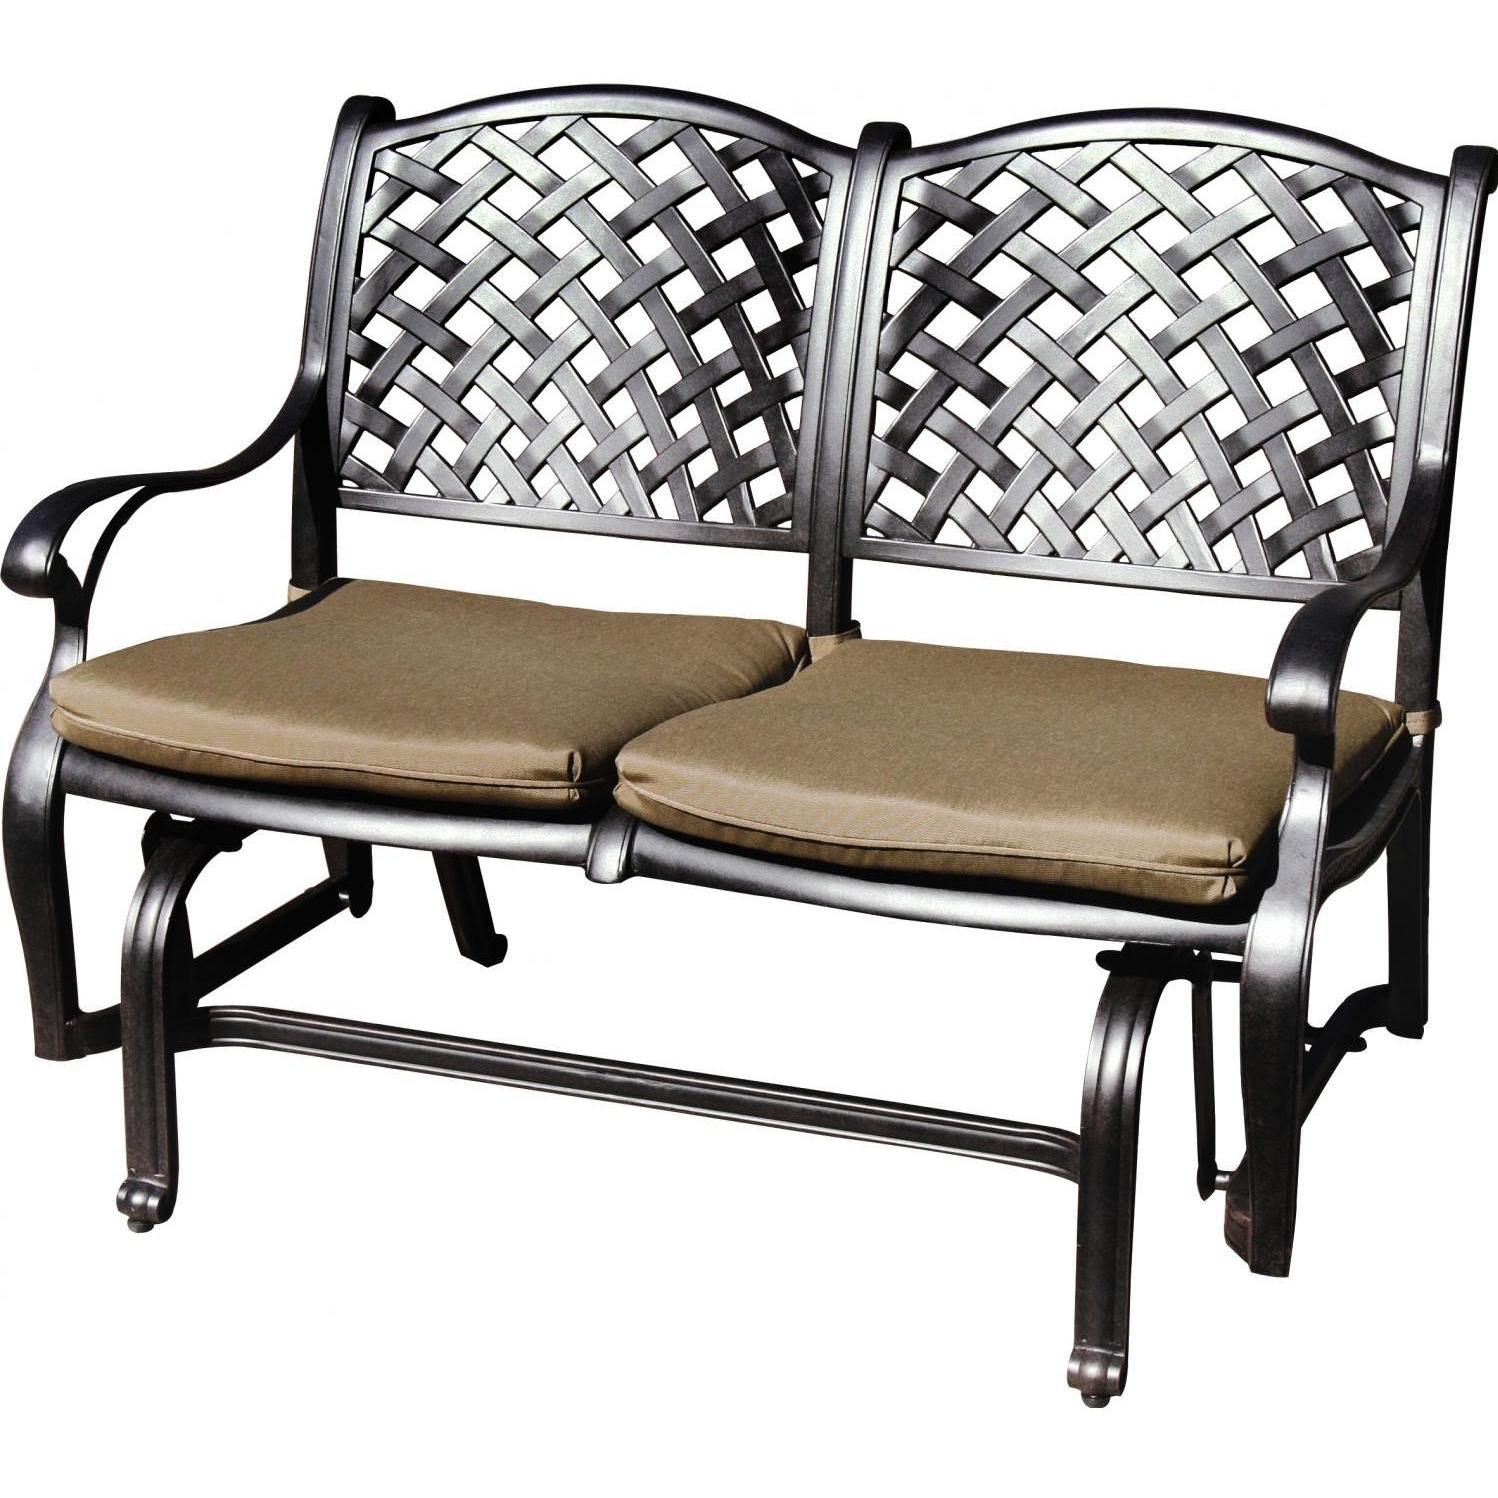 Darlee Nassau Cast Aluminum Patio Bench Glider Within Black Steel Patio Swing Glider Benches Powder Coated (Image 8 of 25)